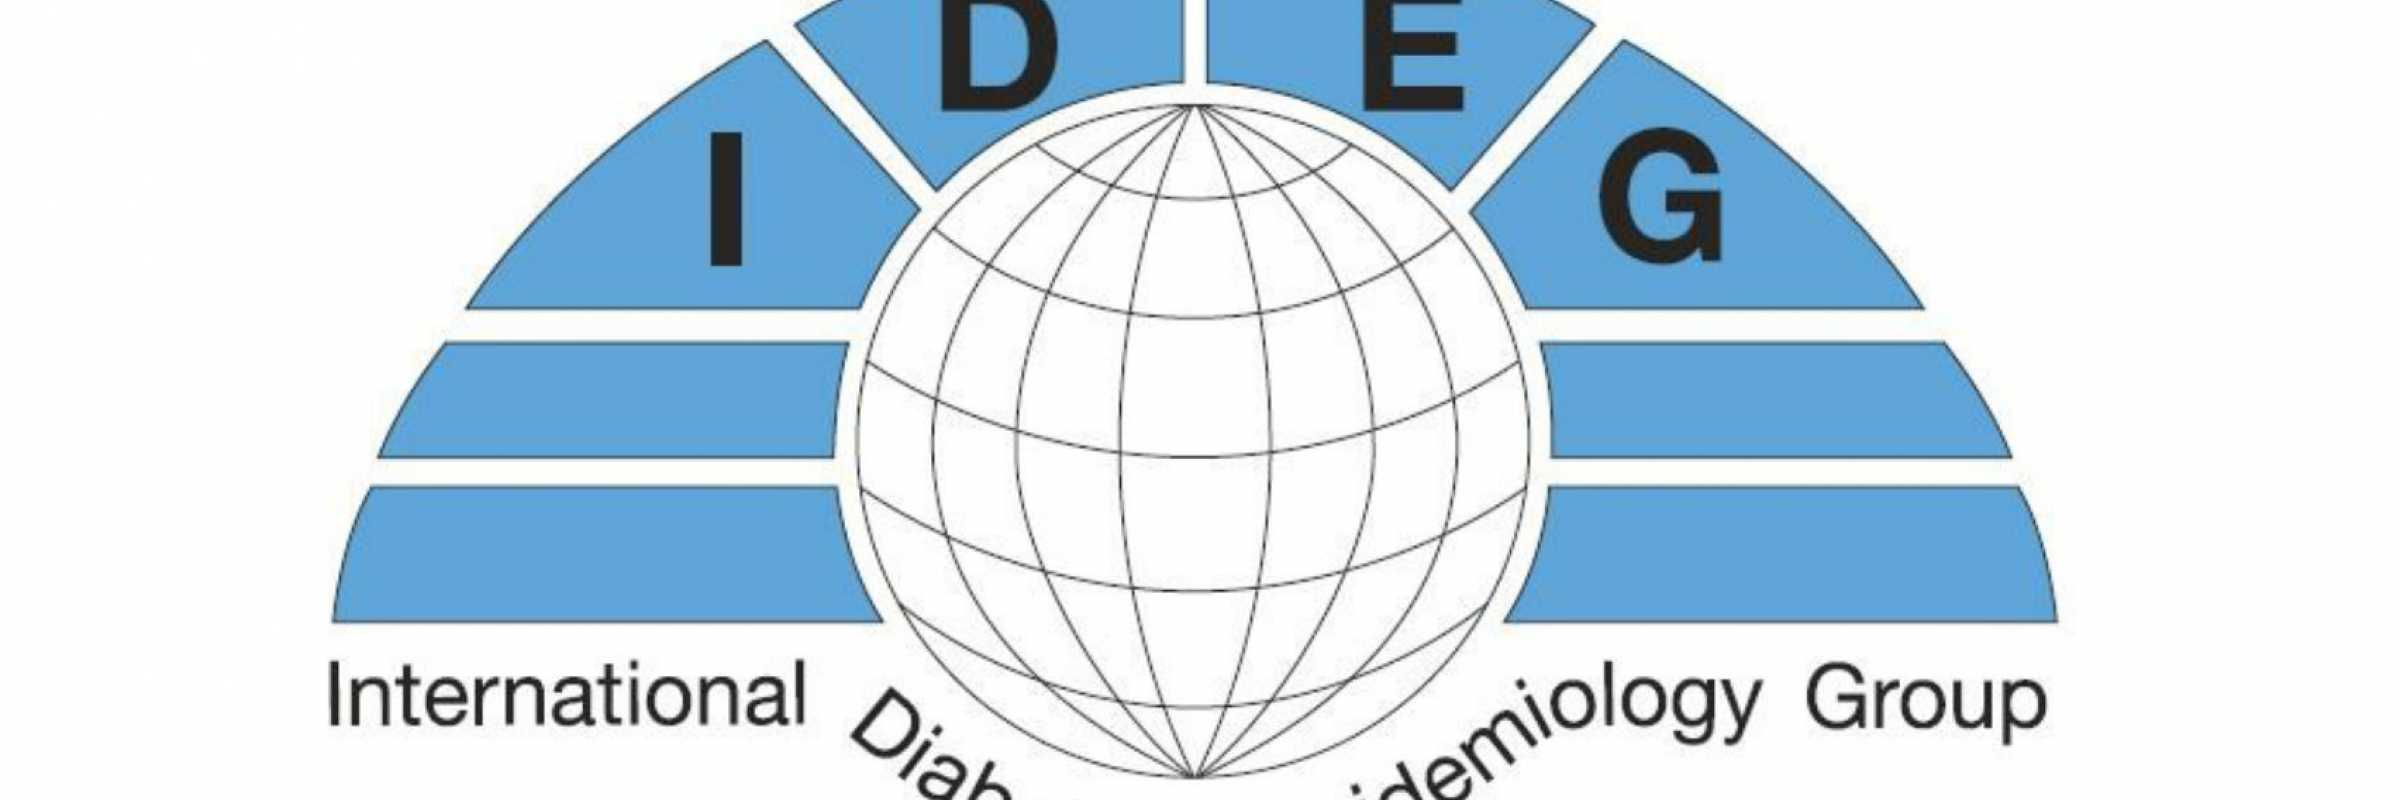 International Diabetes Epidemiology Group 2017